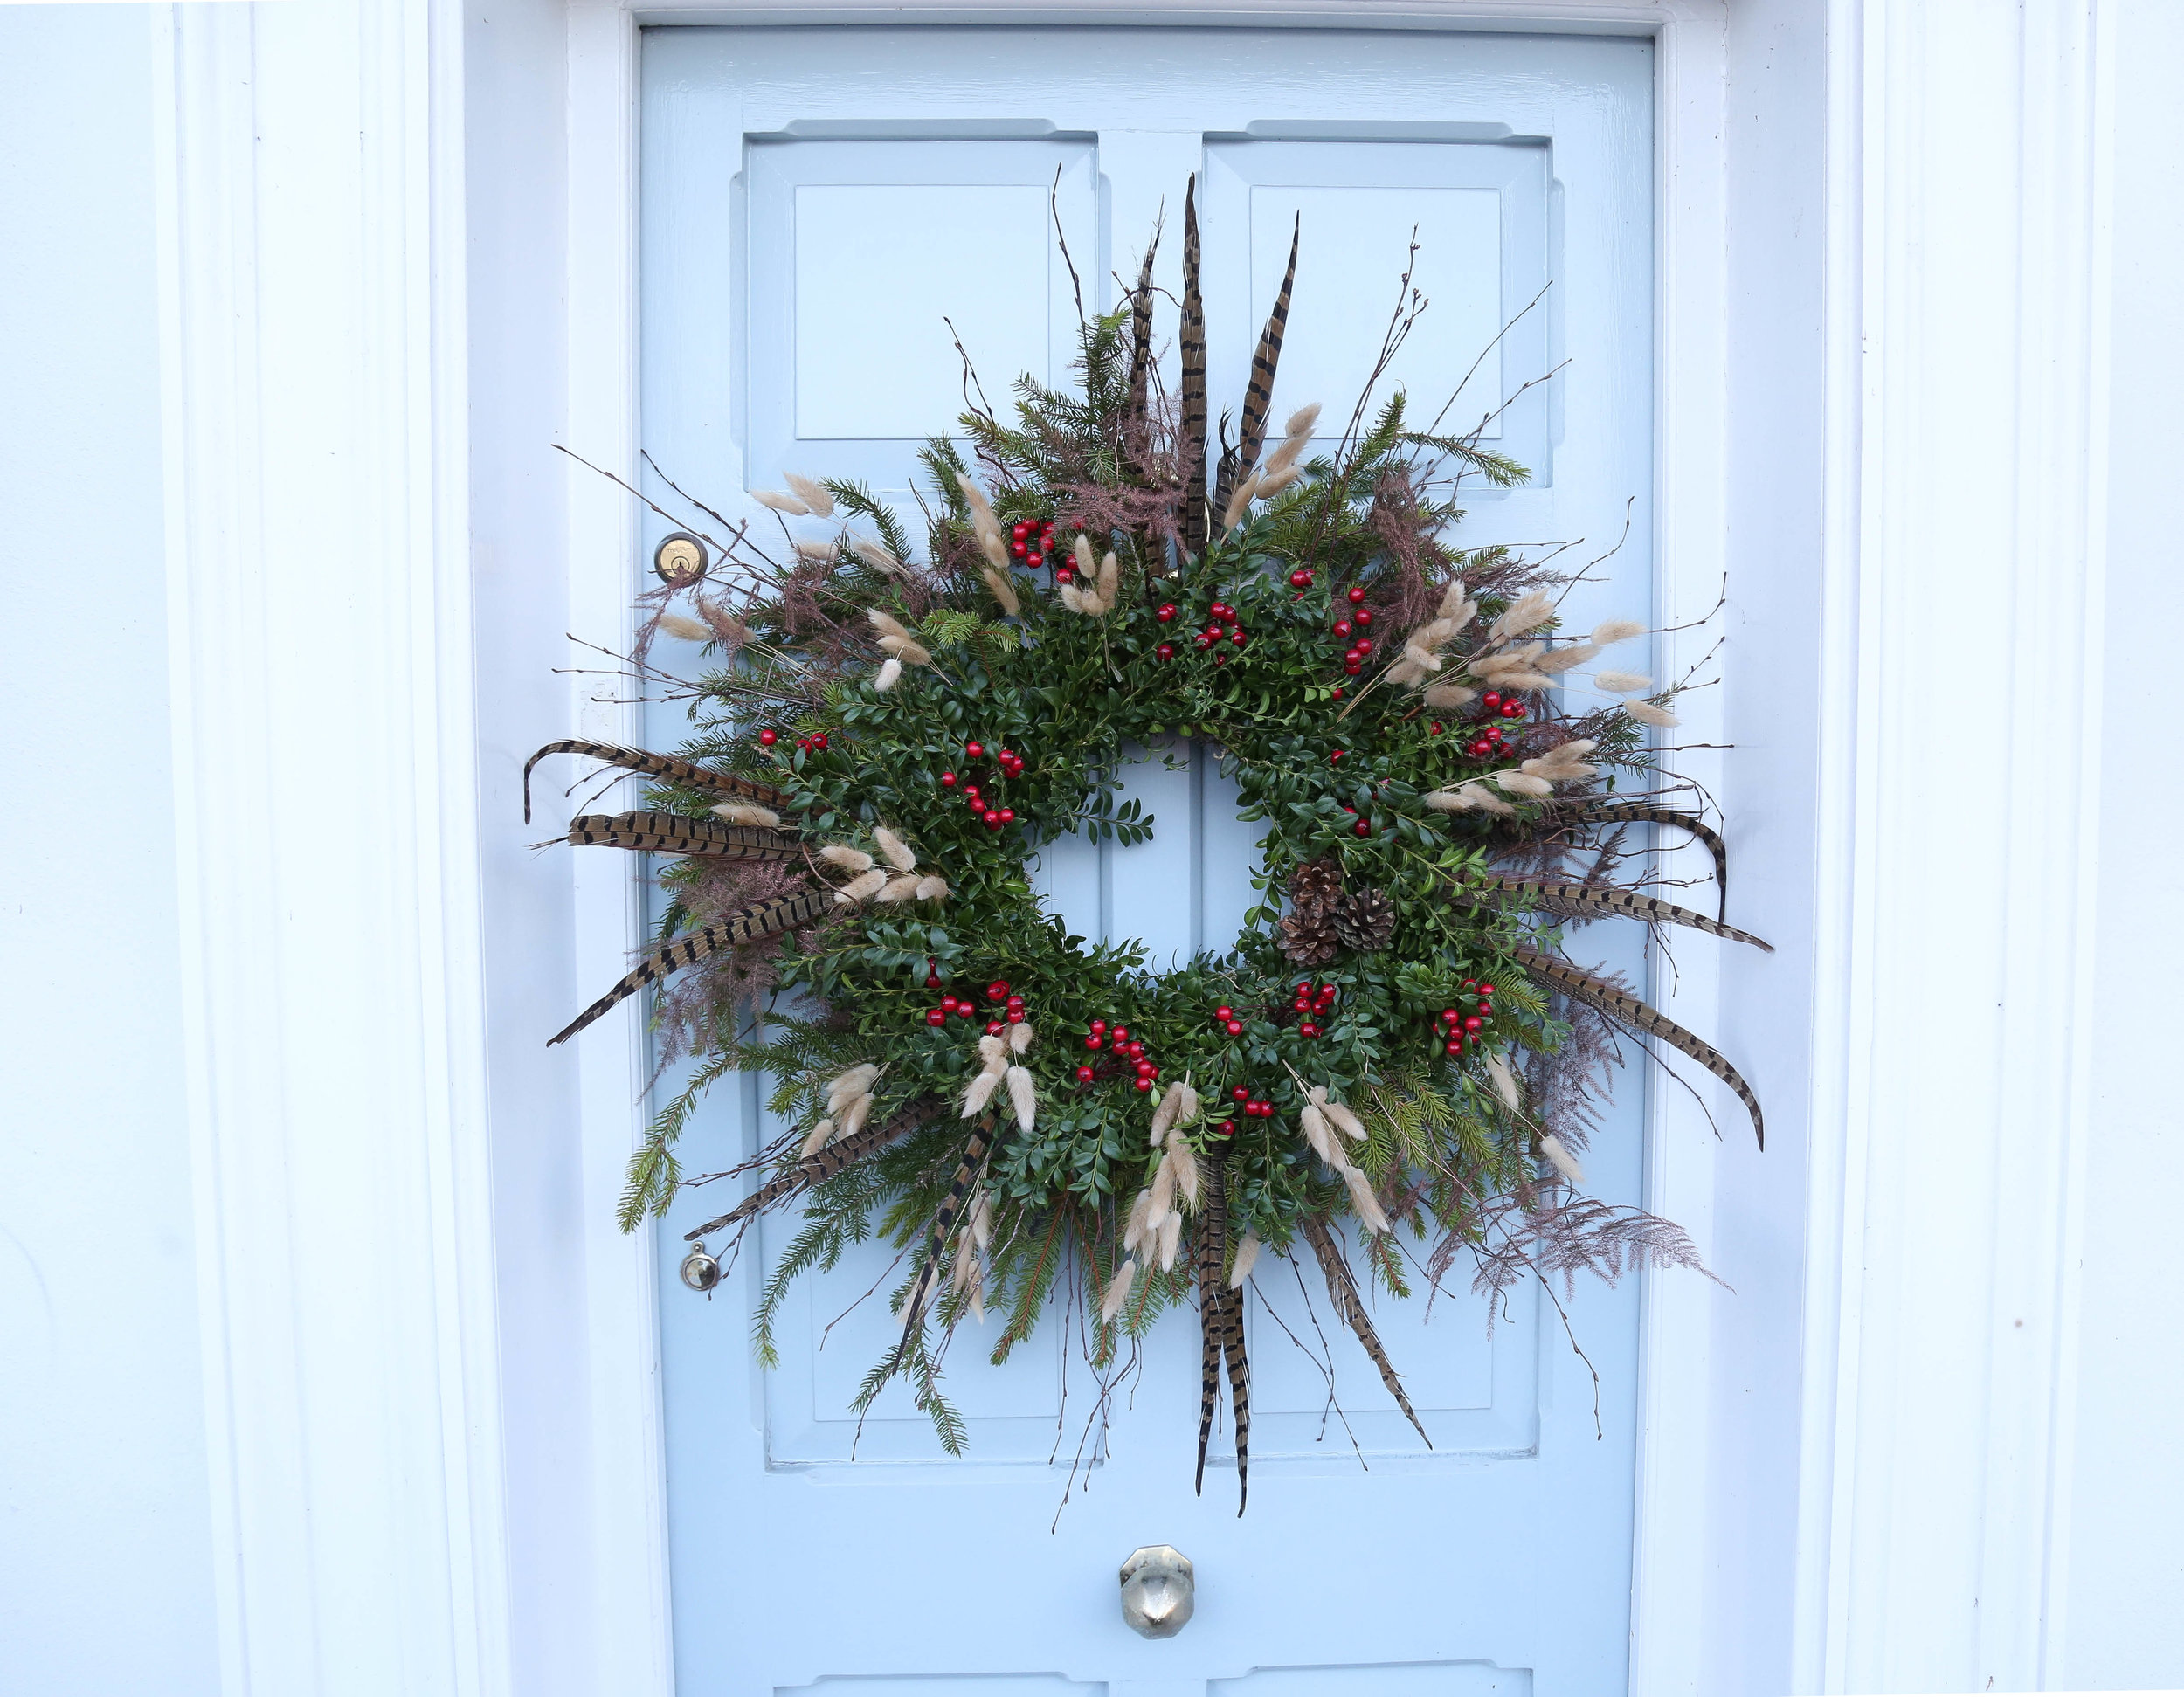 wild, rustic cChristmas wreath with pheasant feathers